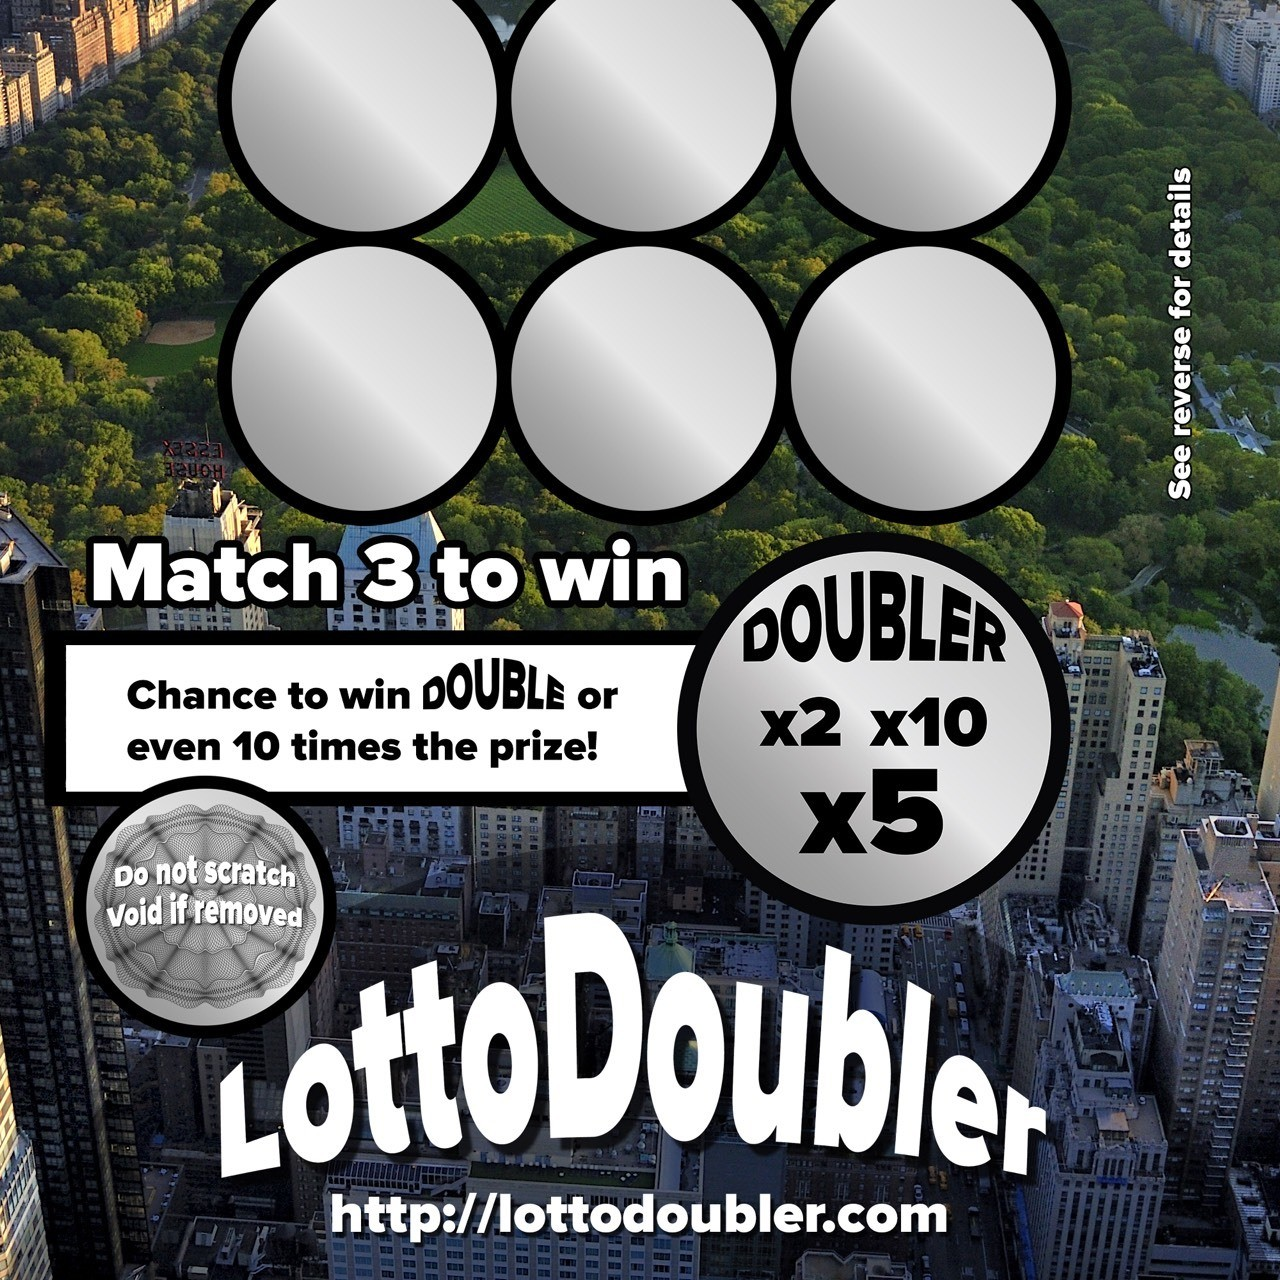 Win up to 10 times! x2, x5, x10 It's all about the doubler! Lotto Doubler instant lottery Blog #millionaire #scratch #scratchticket #scratchtickets #lotto #doubler #lottery #lottodoubler #lotterydoubler #jackpot #instantgames #instant #games